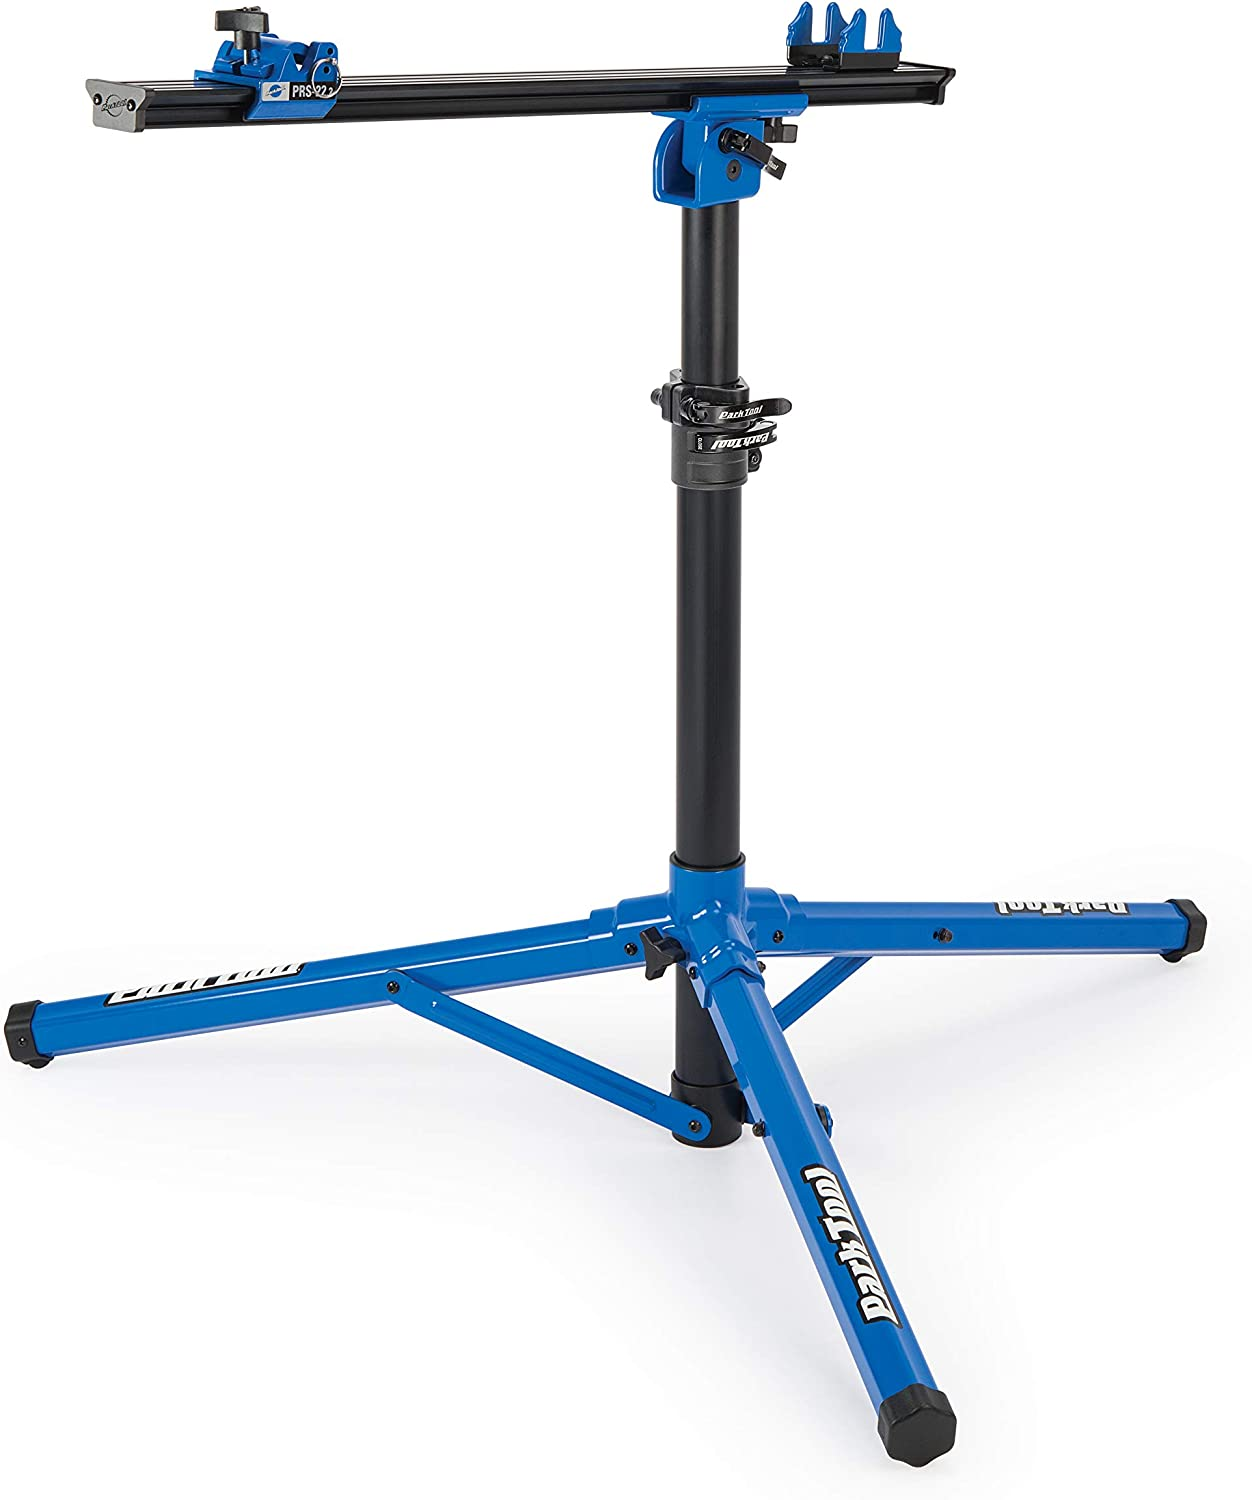 Park Tool PRS-22.2 Team Issue Bicycle Repair Stand